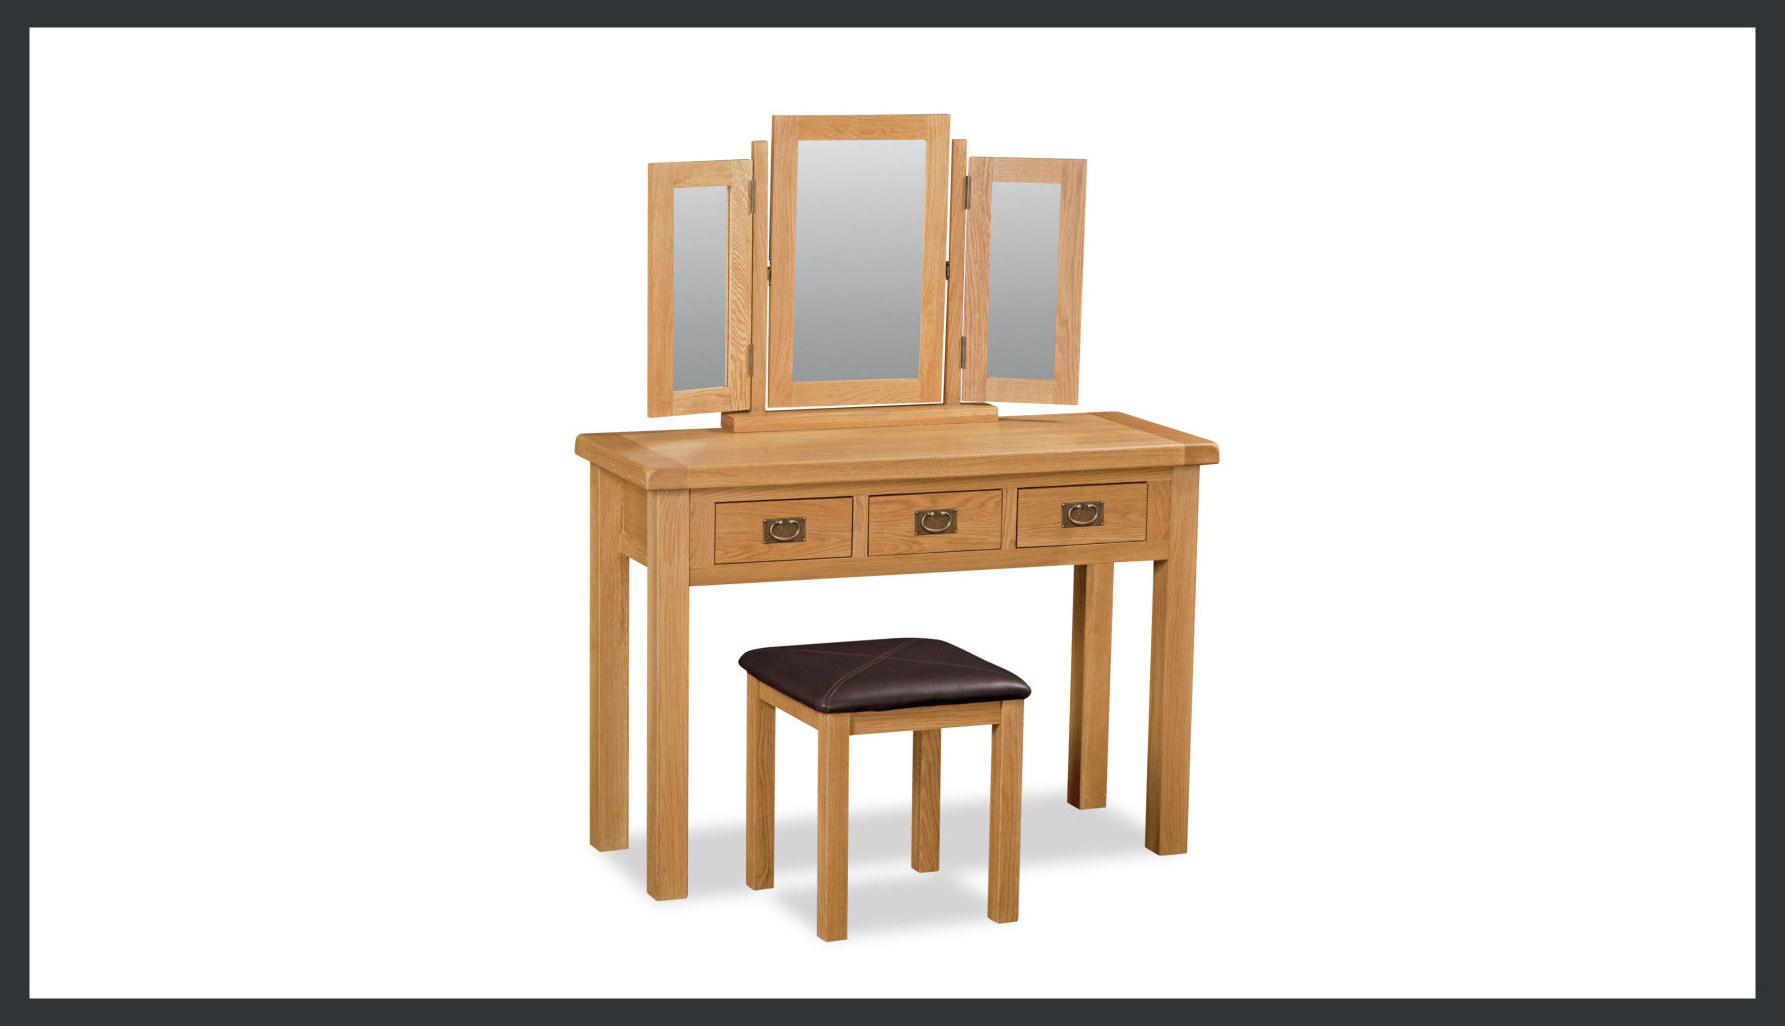 Rustique Home London Oak 1005 Solid wood in natural oak color. Three panels of mirrors at an angle sitting on top of natural oak dressing table with a seat